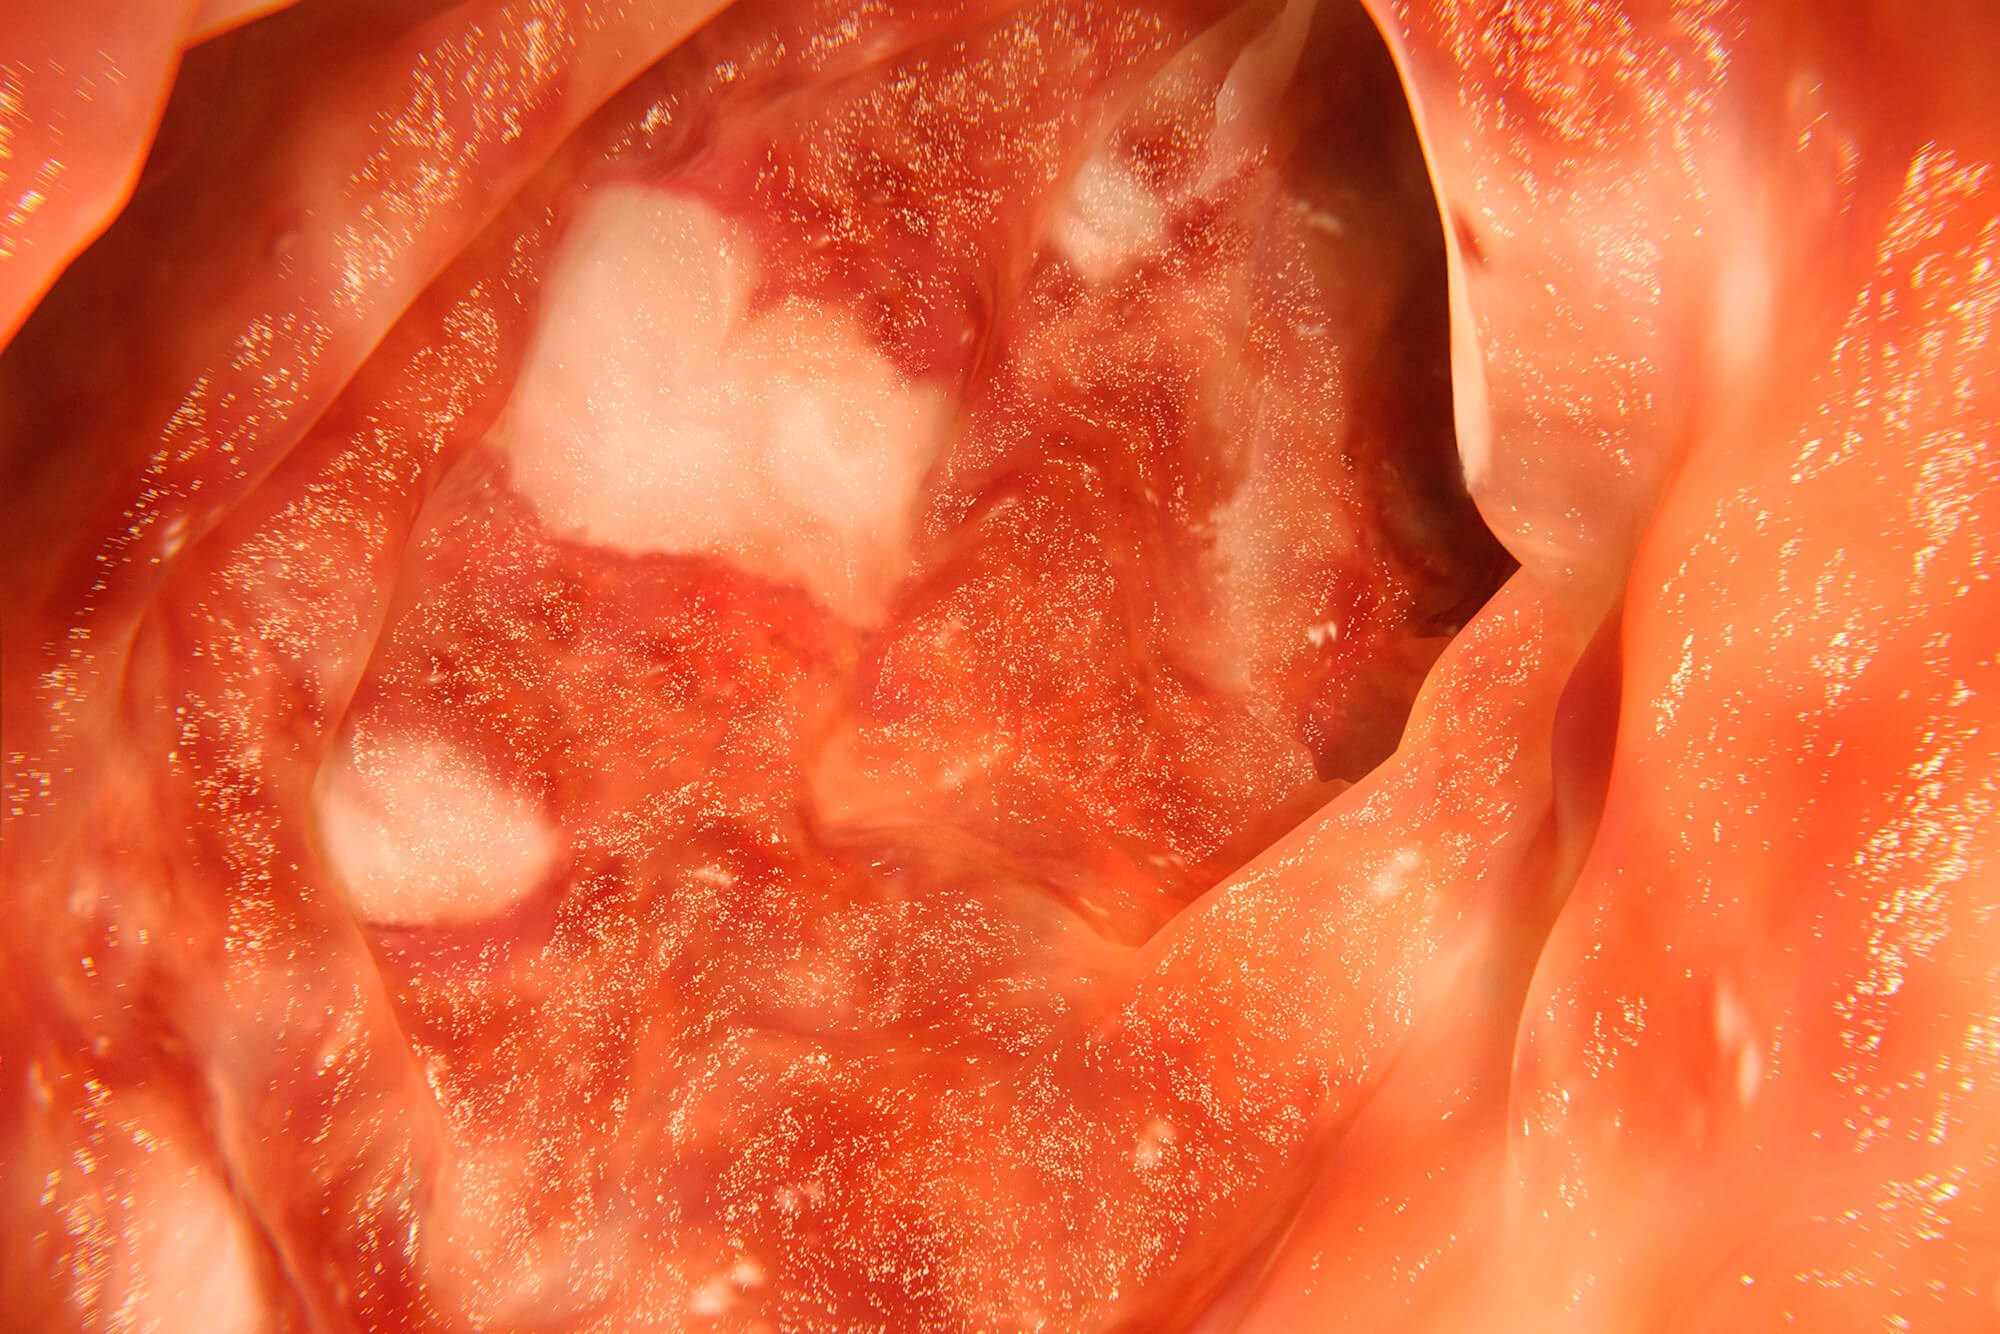 Immune checkpoint inhibitors are associated with potentially serious IRAEs, such as immune-mediated colon inflammation, or colitis.